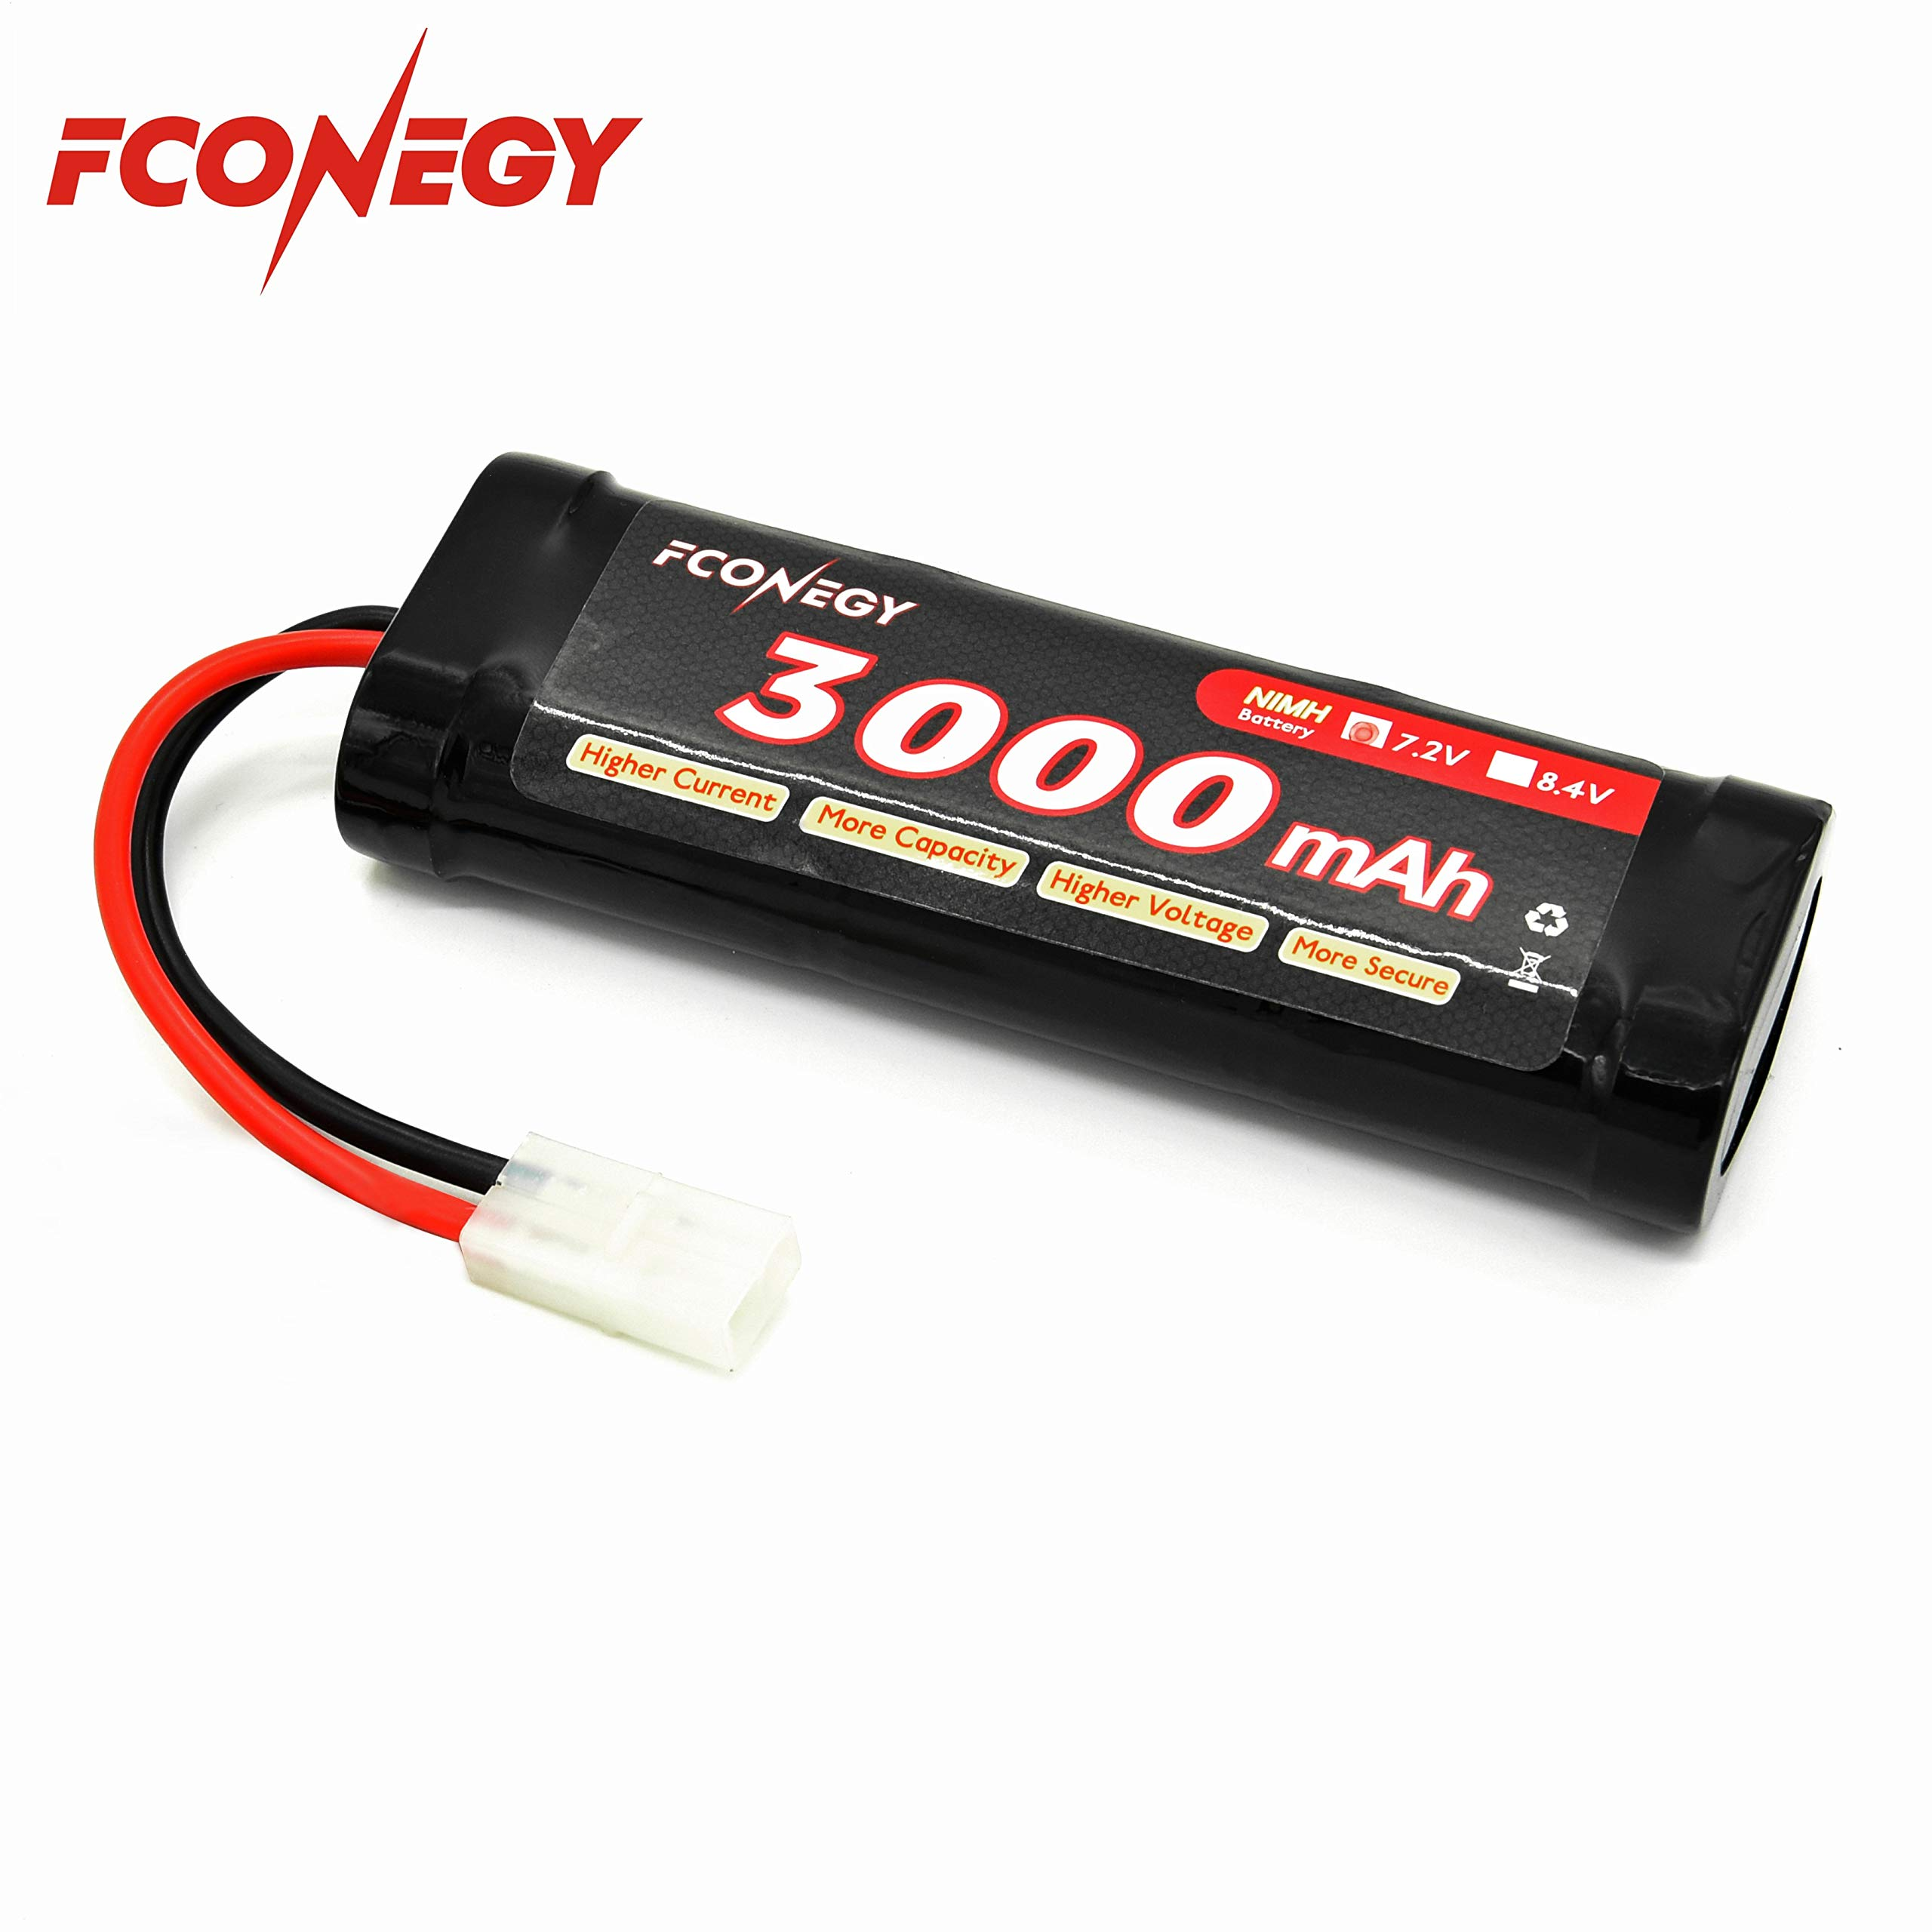 Fconegy NiMH Battery 7.2V 3000mAh 6-Cell Flat Pack with Tamiya Plug for RC Cars, RC Truck,Rc Hobby